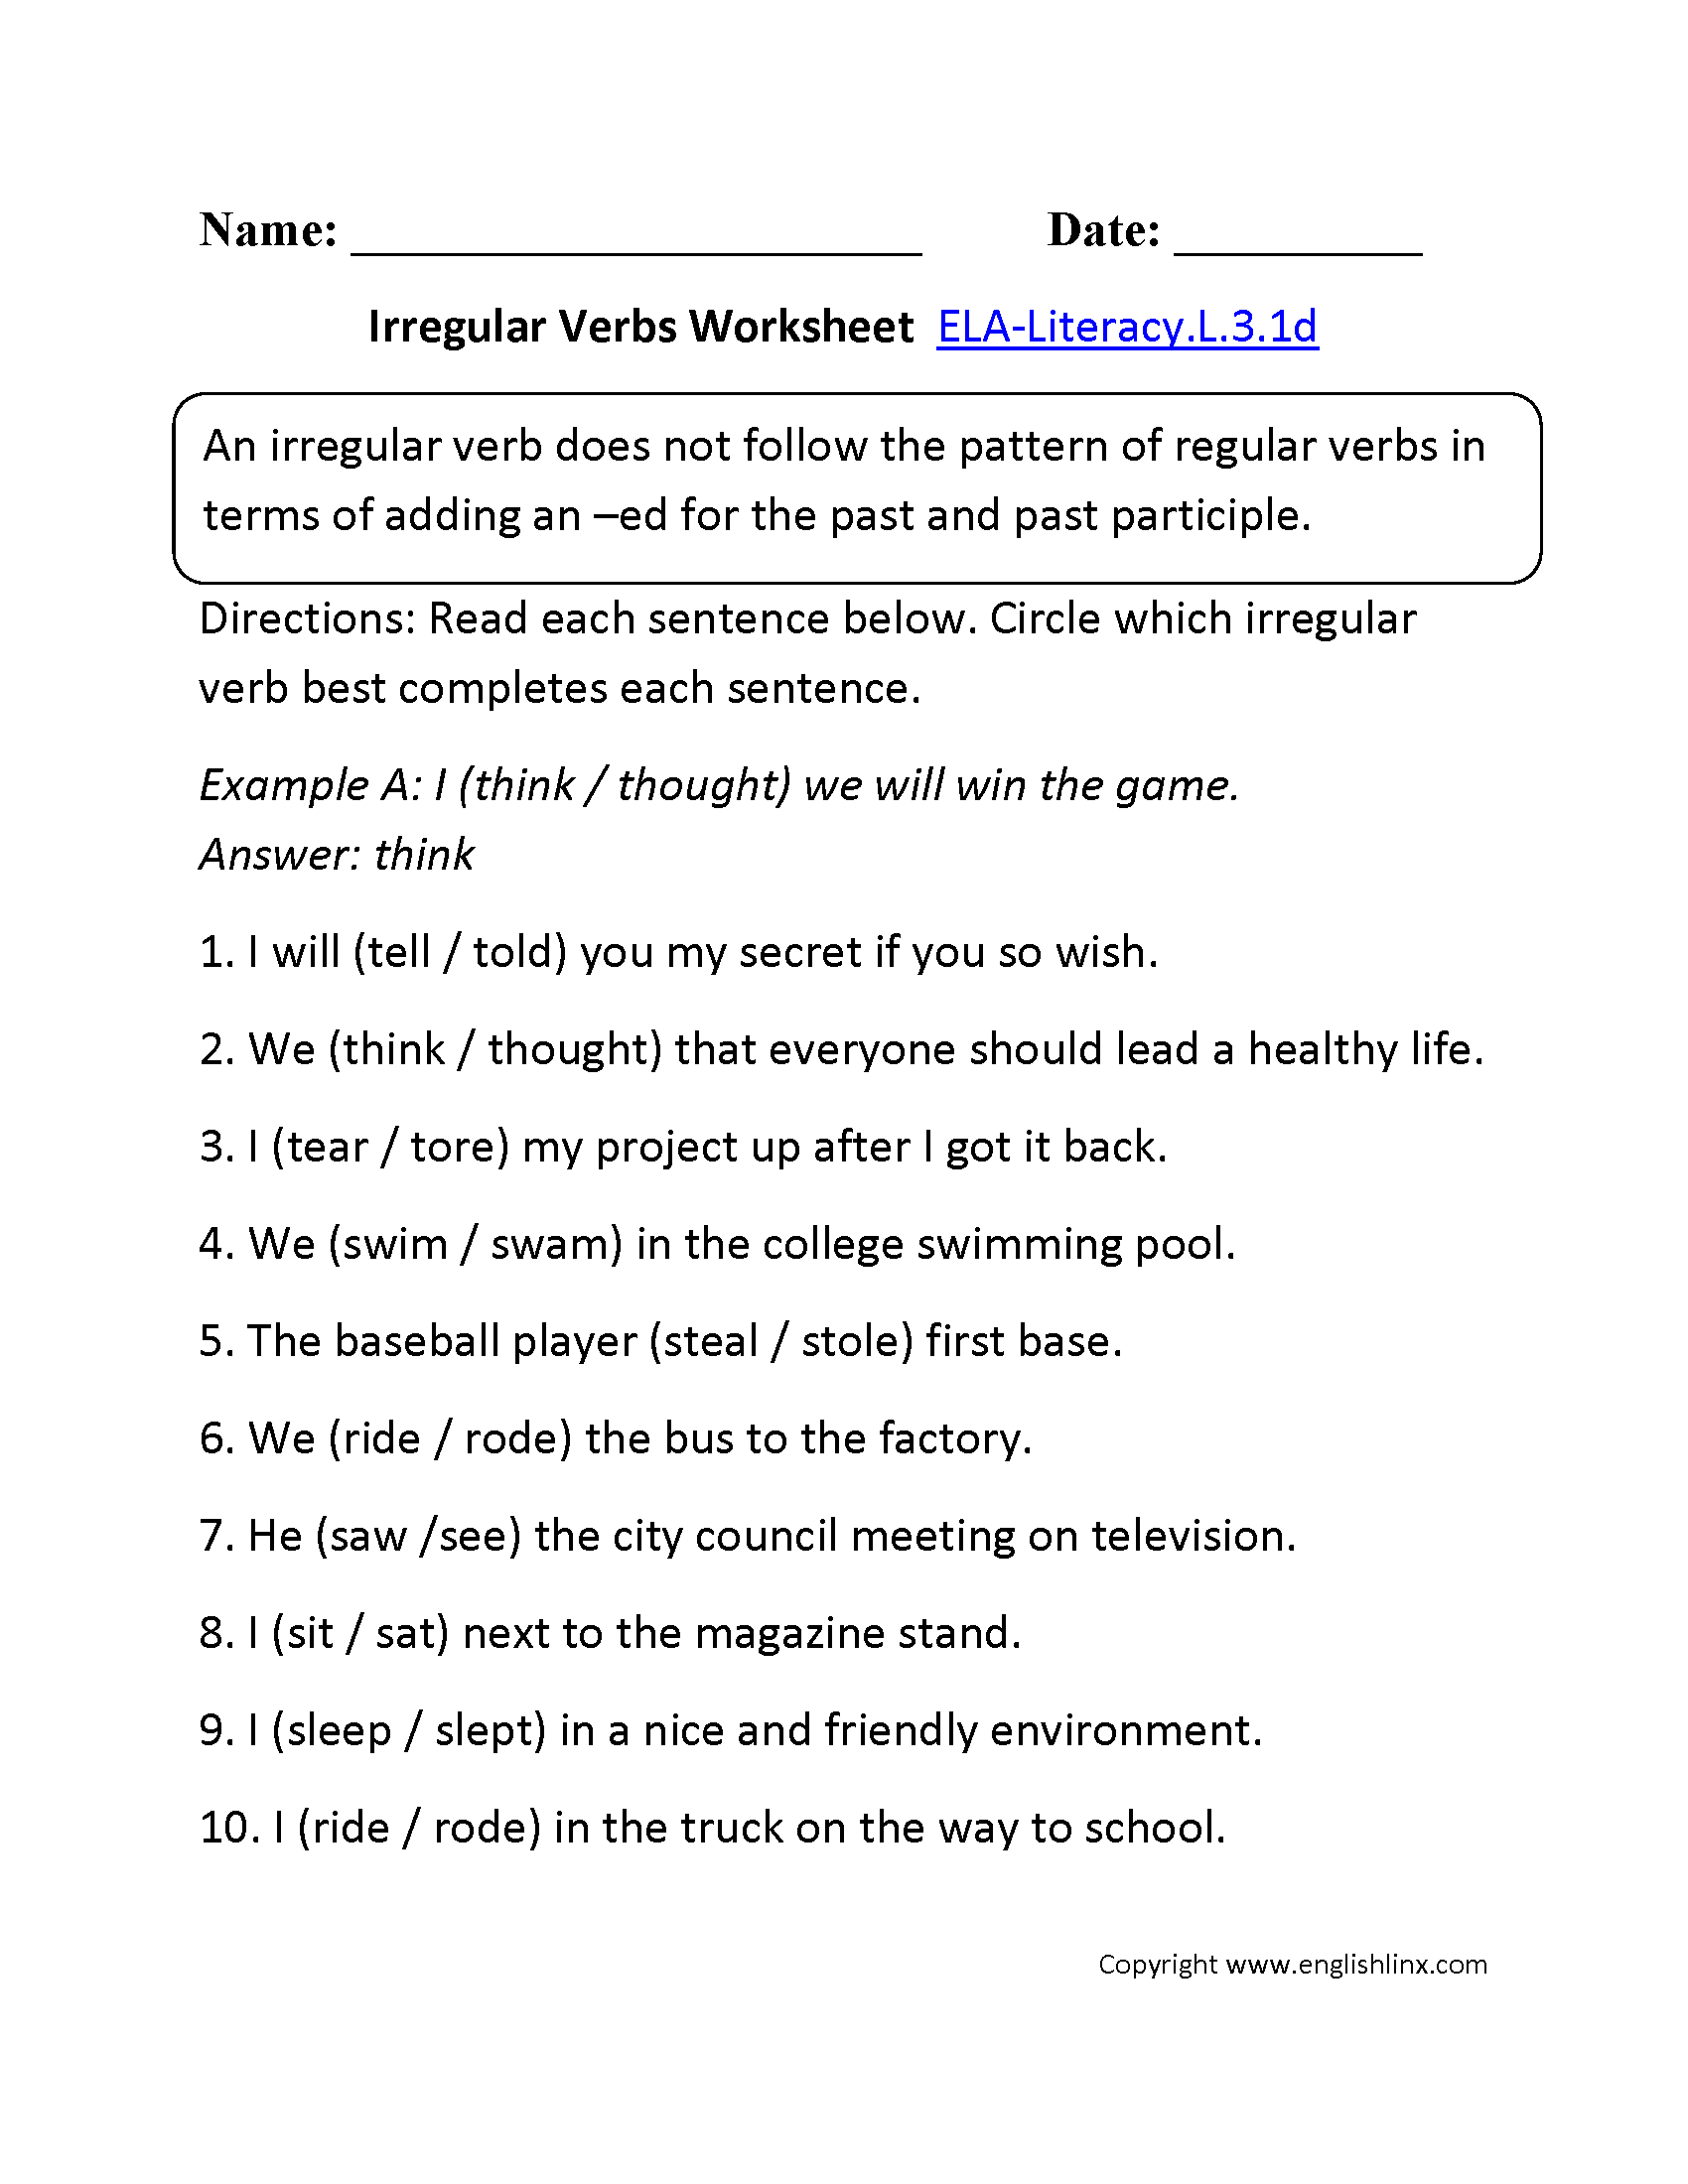 Worksheets 6th Grade Ela Worksheets irregular verbs worksheet 1 ela literacy l 3 1d language english worksheets that are aligned to the grade common core standards for language